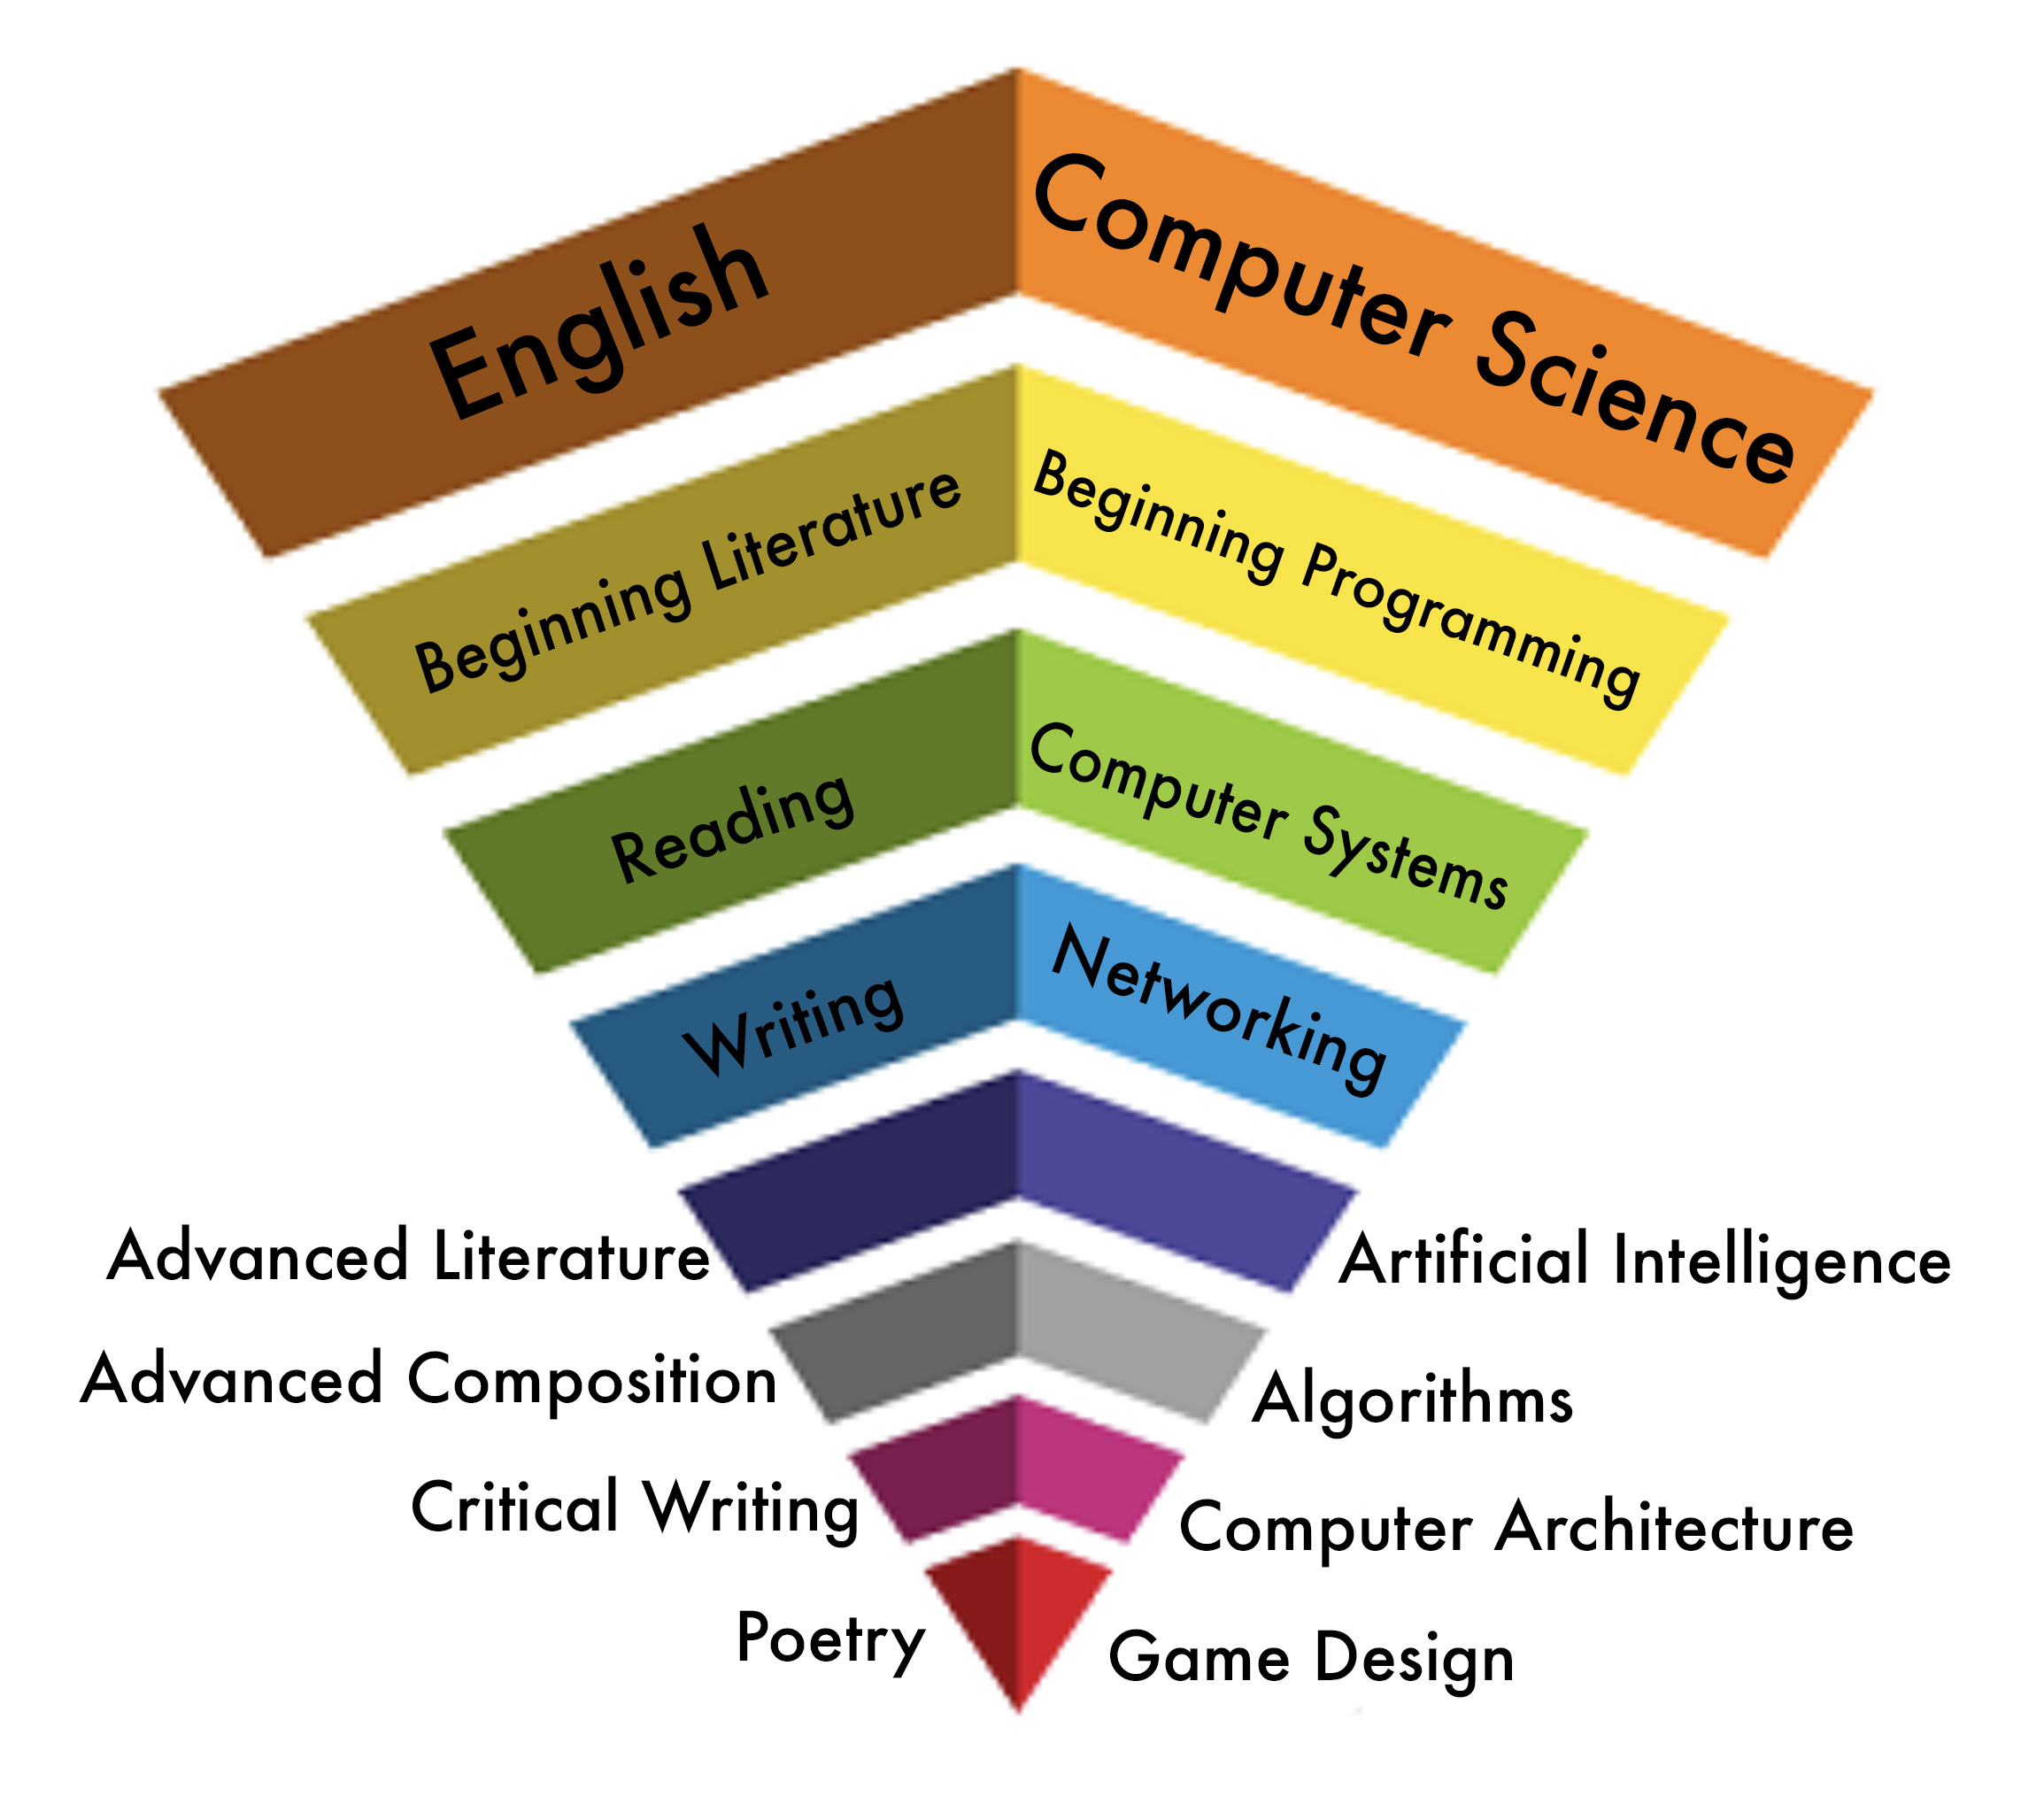 How does computer programmingrelate to Computer Science? - Just like reading and writing are fundamental skills you'll learn when you study English, computer programming is one of the fundamental skills you'll learn when you study Computer Science. Computer Science includes many topics that describe the design and use of computers.